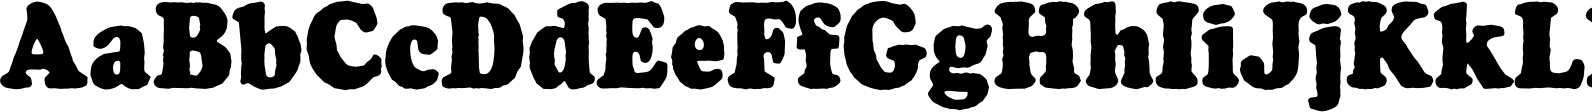 Cooper Antique Cond D Font